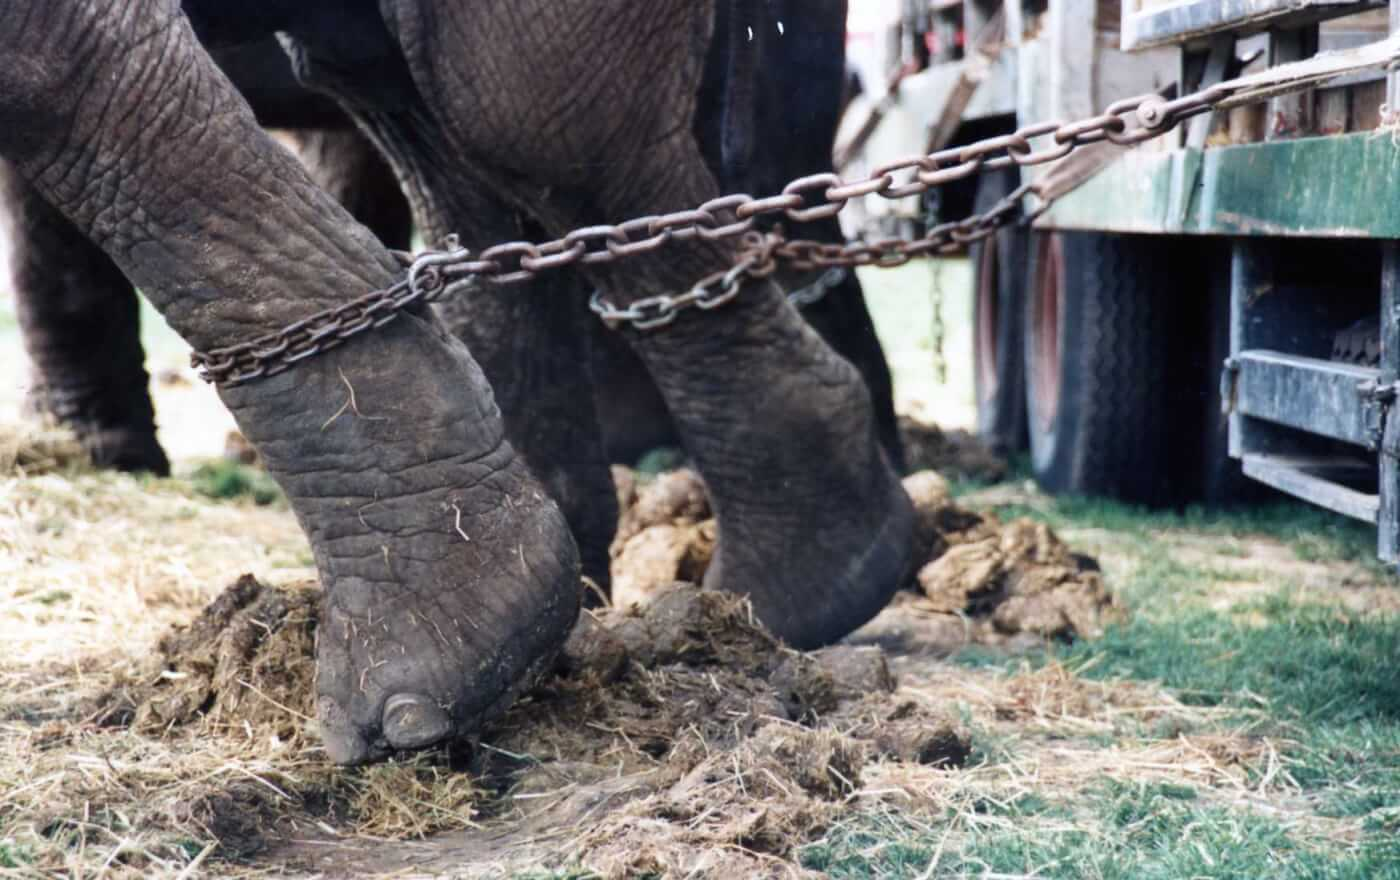 10 Reasons Not to Attend an Animal Circus | PETA